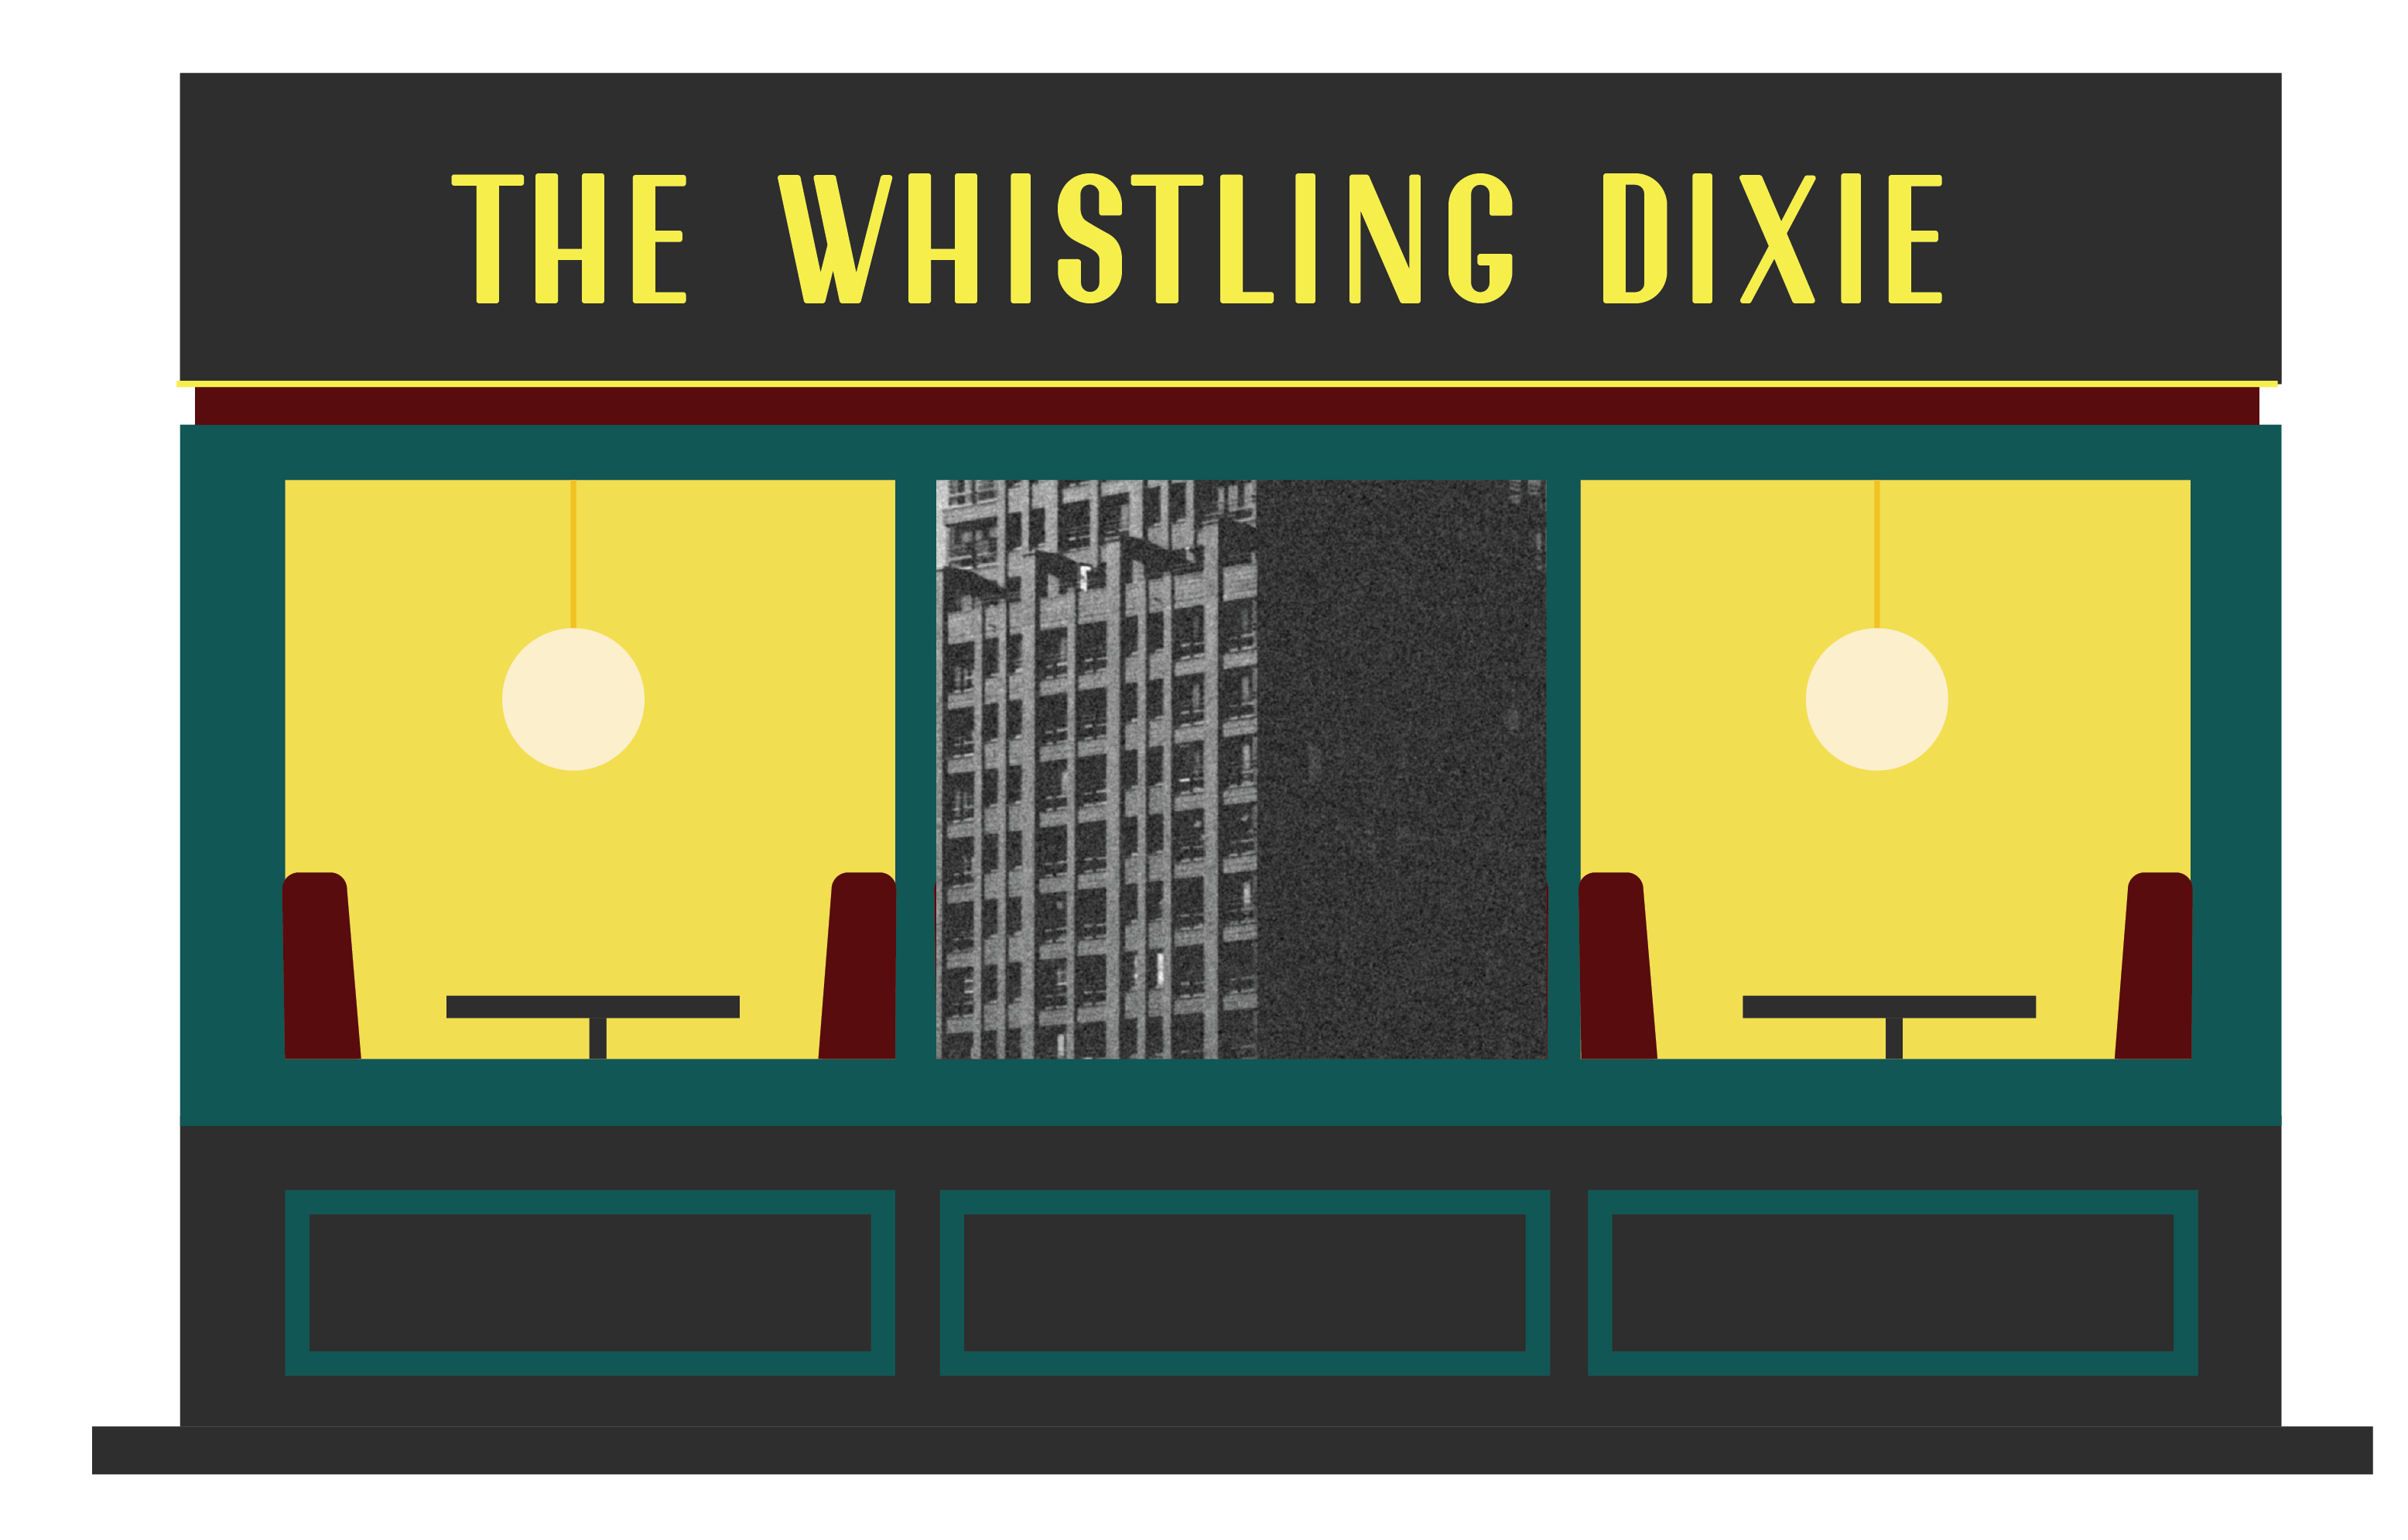 The Whistling Dixie Central City Book Illustrations Buildings